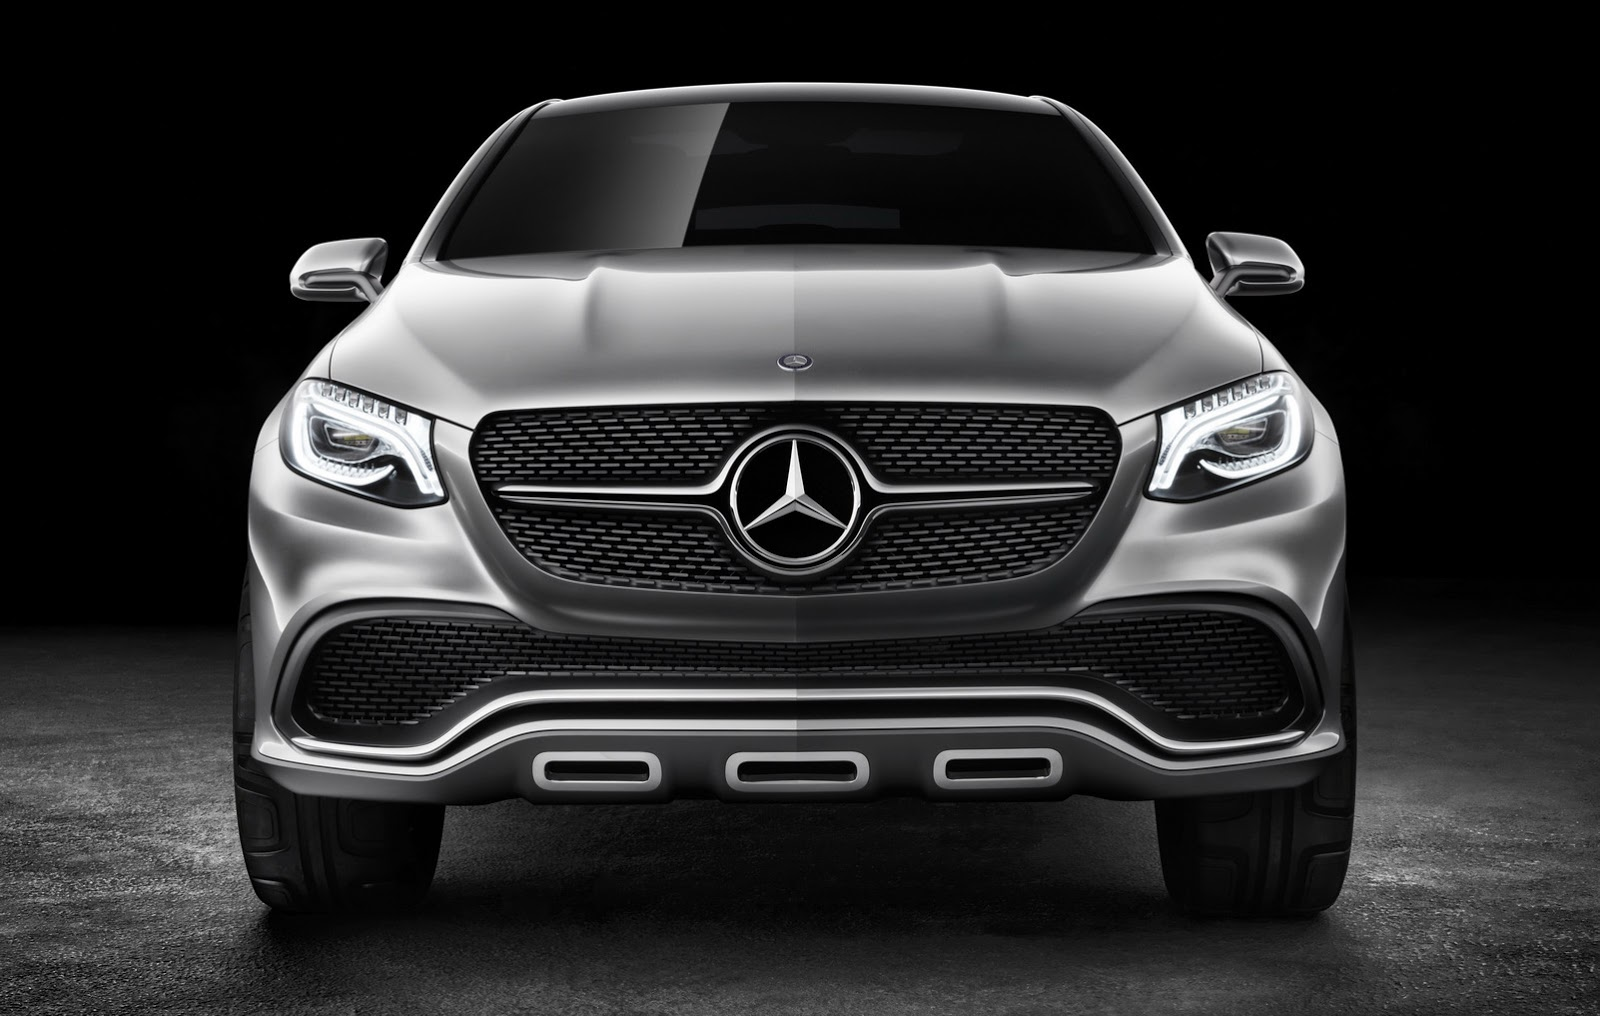 mercedes concept coupe suv Did Mercedes Concept Coupe SUV Copy the BMW X6